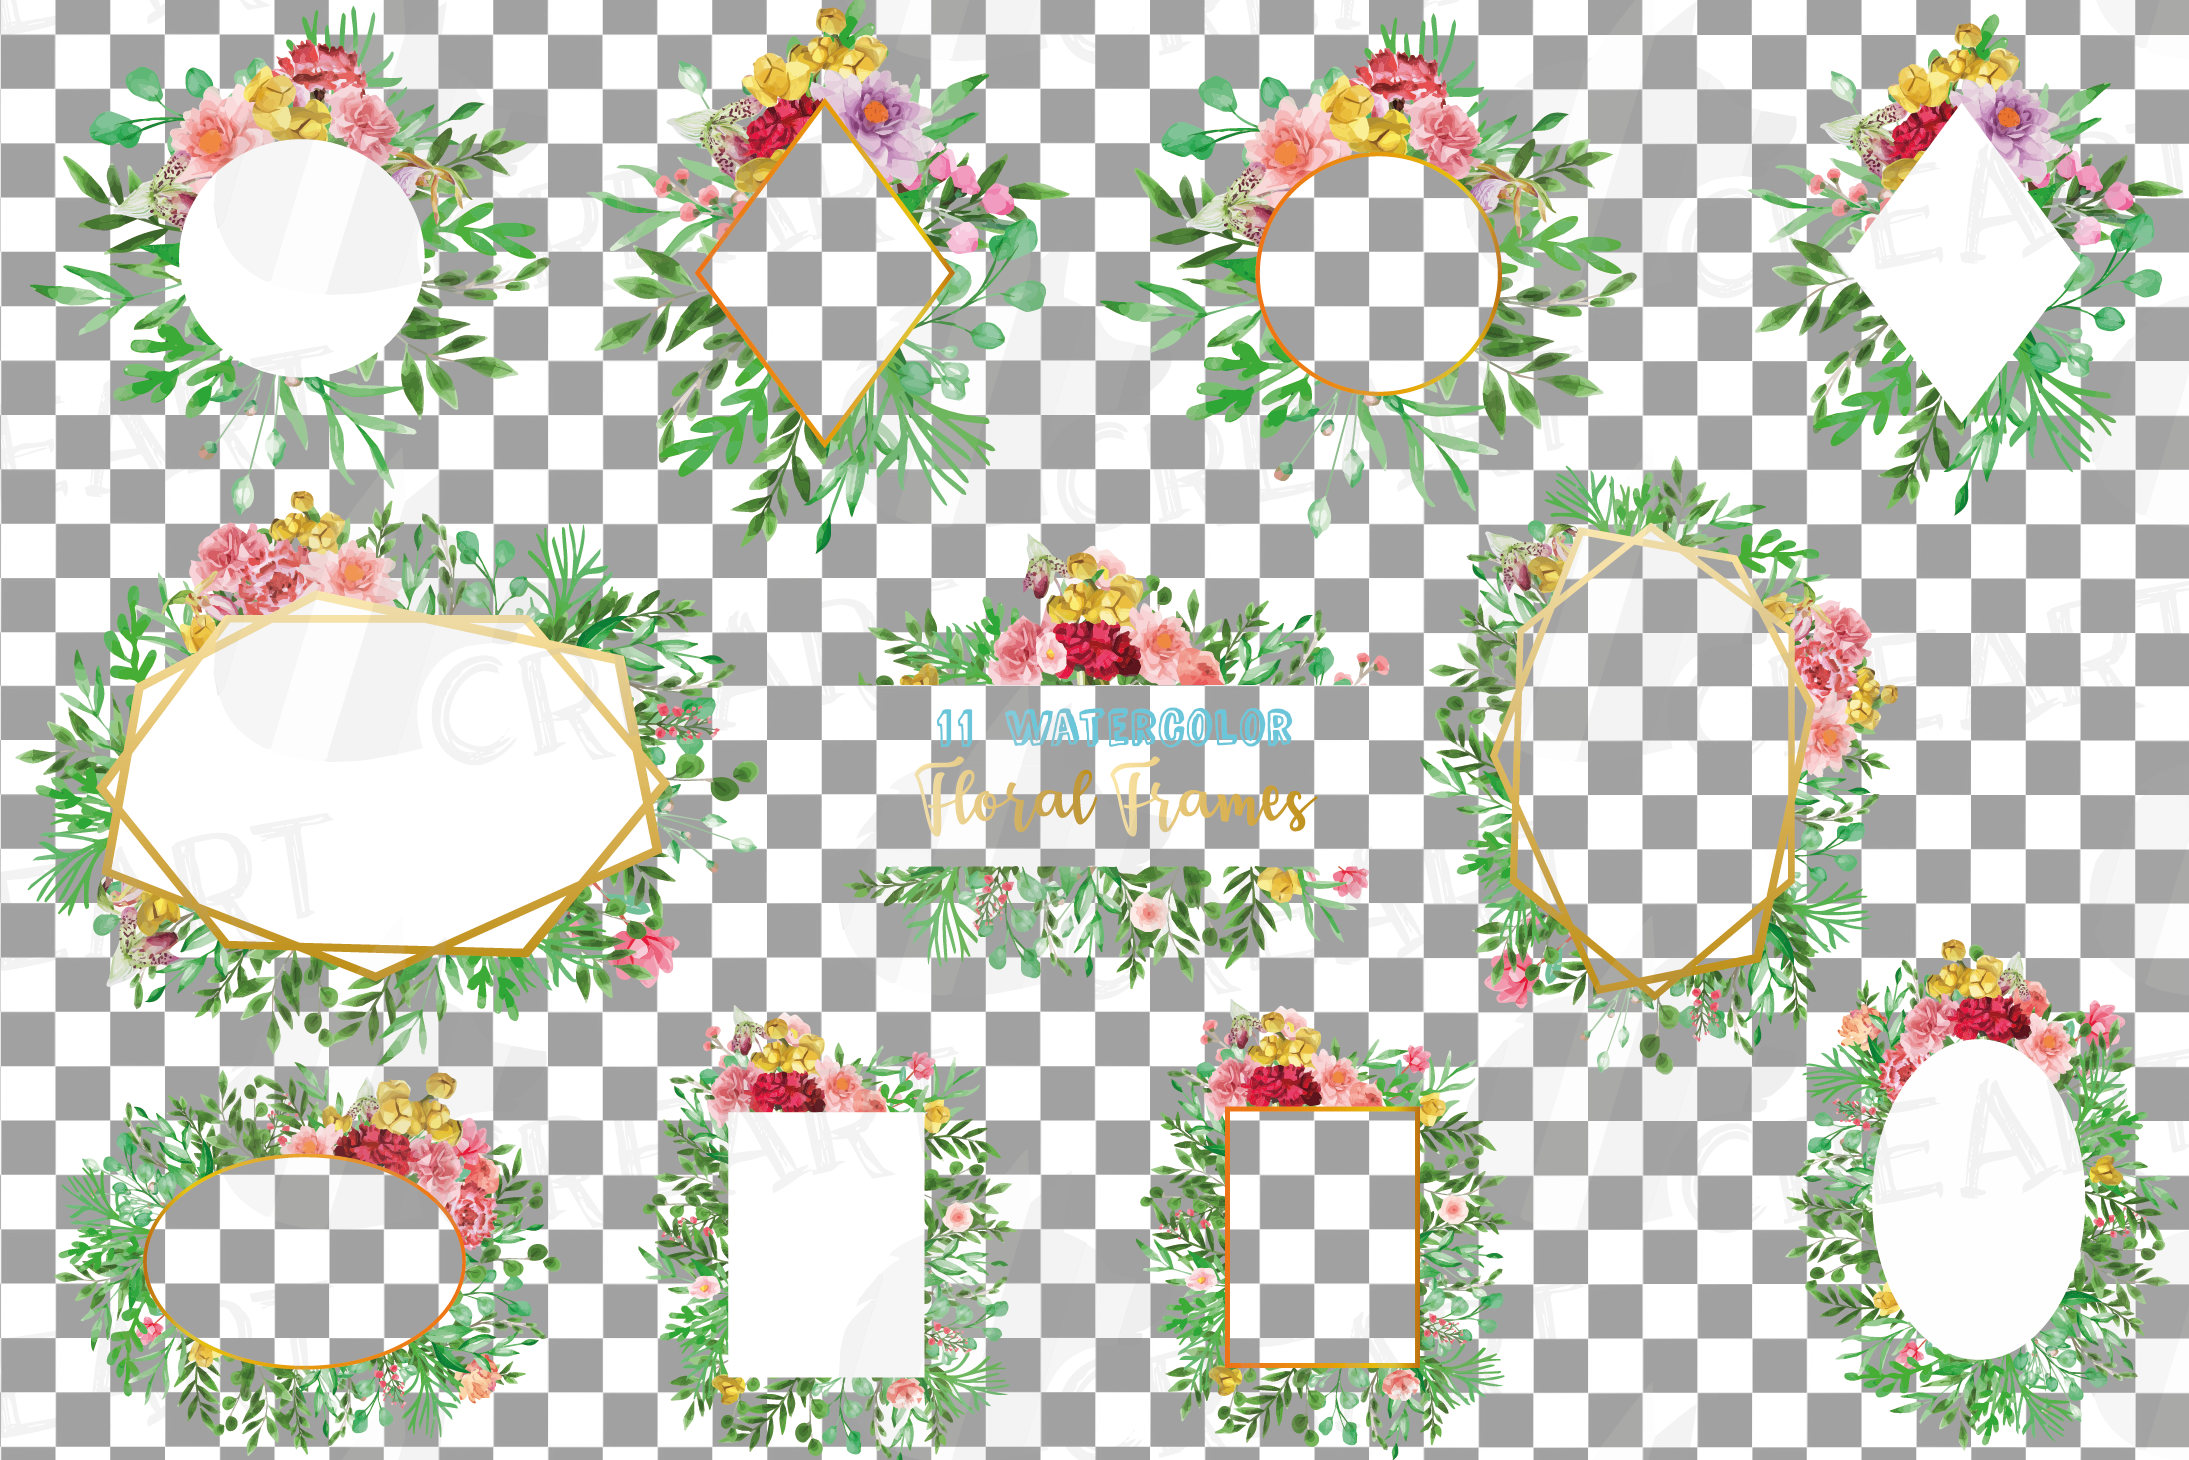 Watercolor floral floral frames and borders clip art pack example image 14